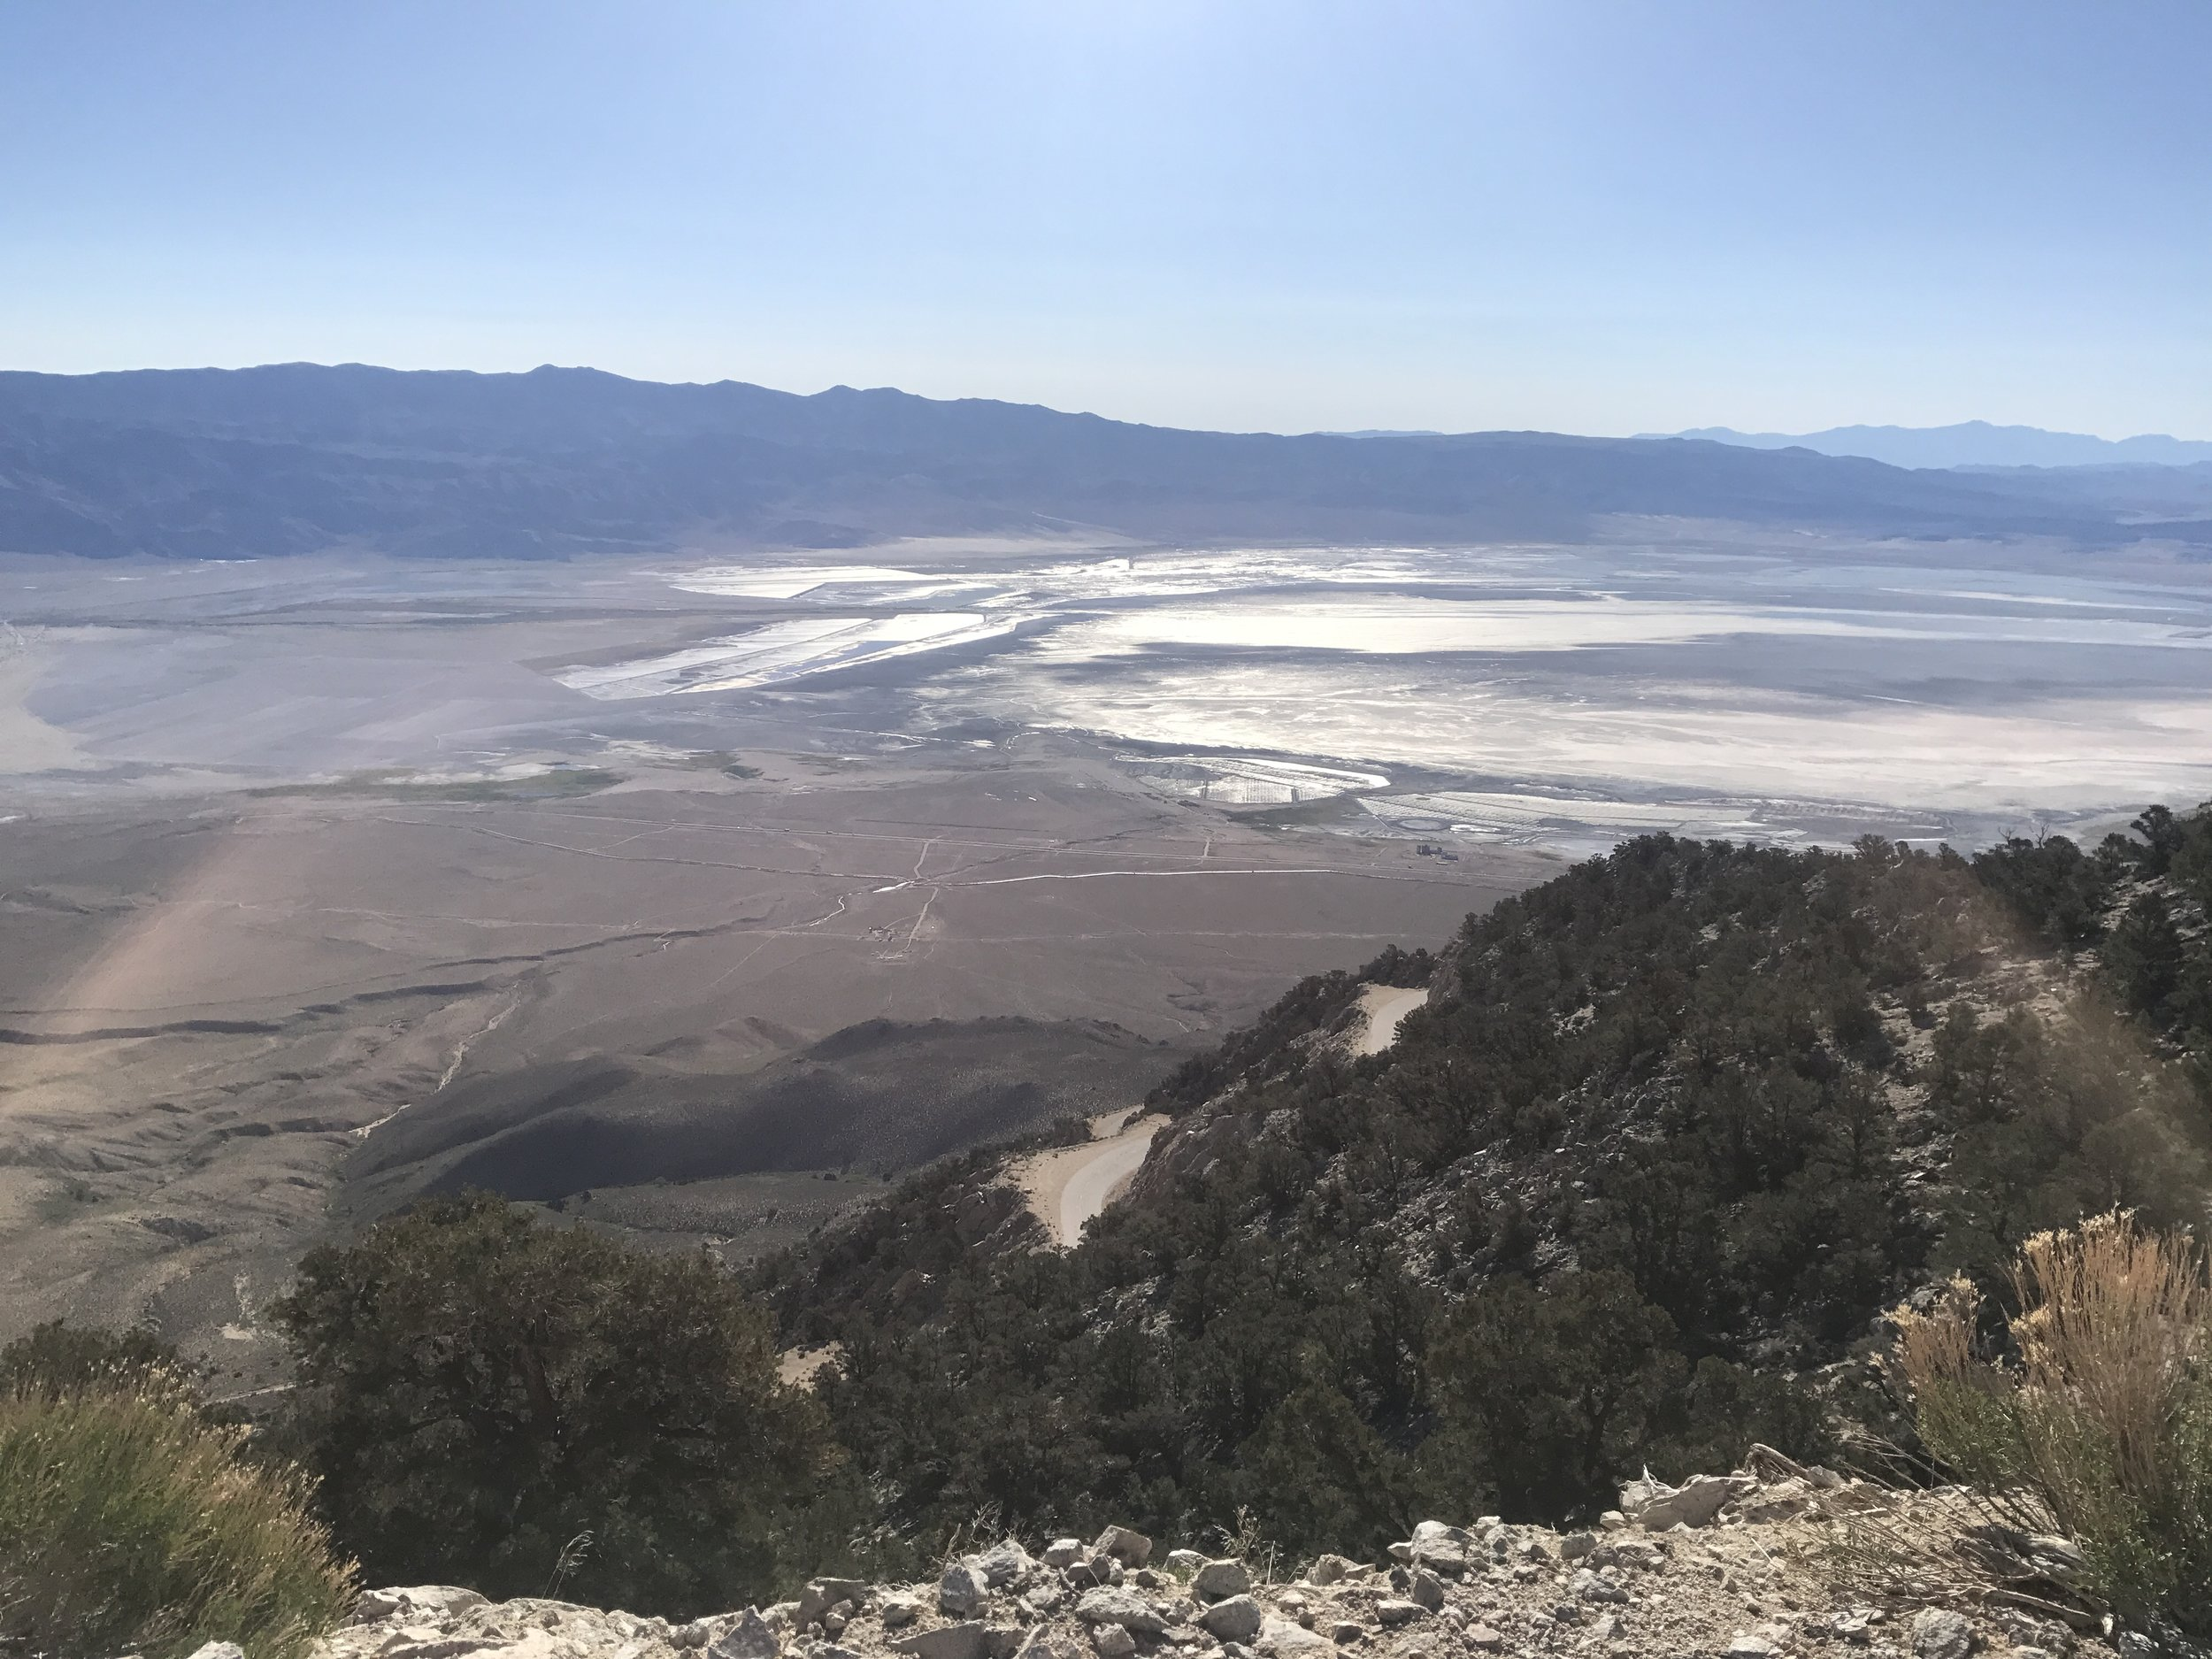 Views down into the Owens Valley as we gained our elevation back.